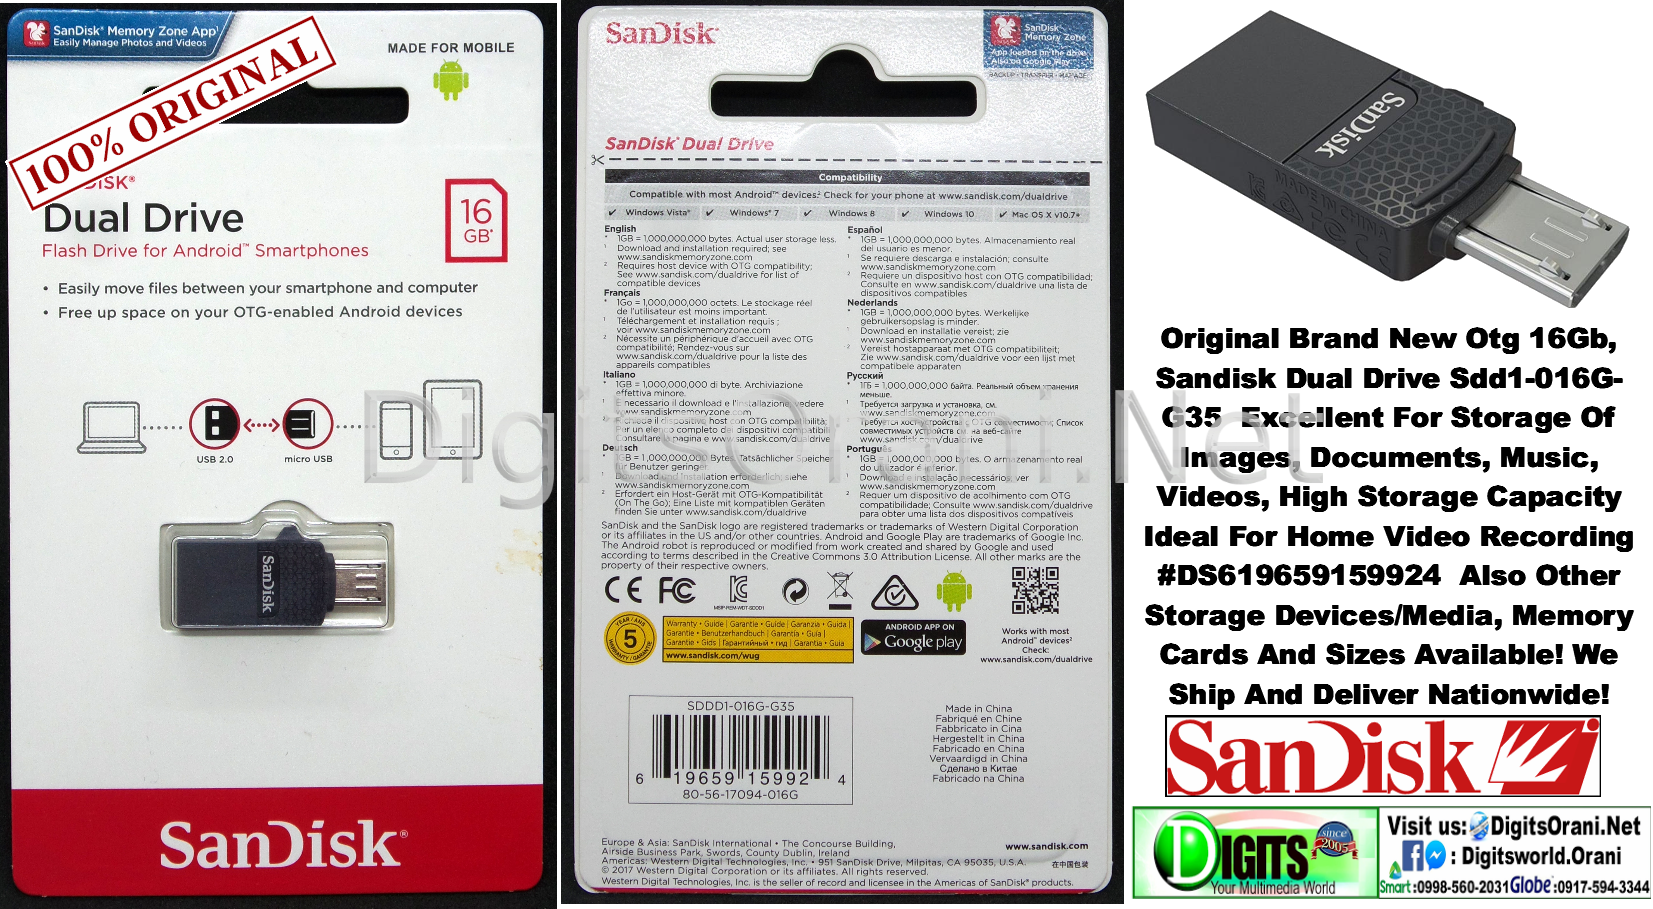 Original Otg Sandisk Dual Drive Sdd1 016g G35 Excellent For Storage 16gb Ultra Usb 30 100 Touch To Zoom